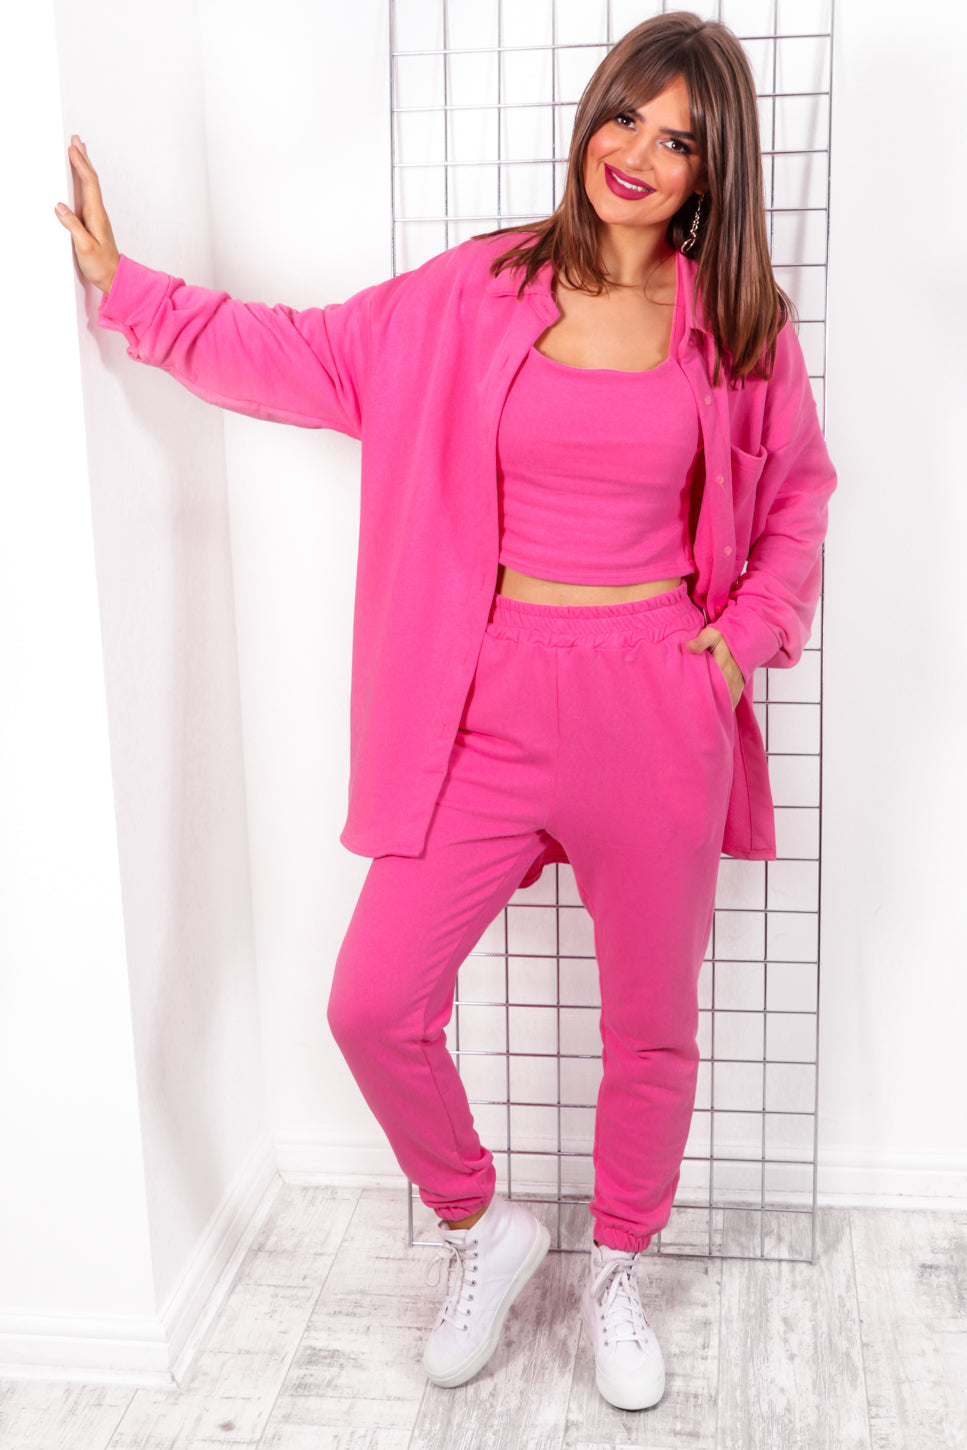 That's My Vibe - Pink Three Piece Set